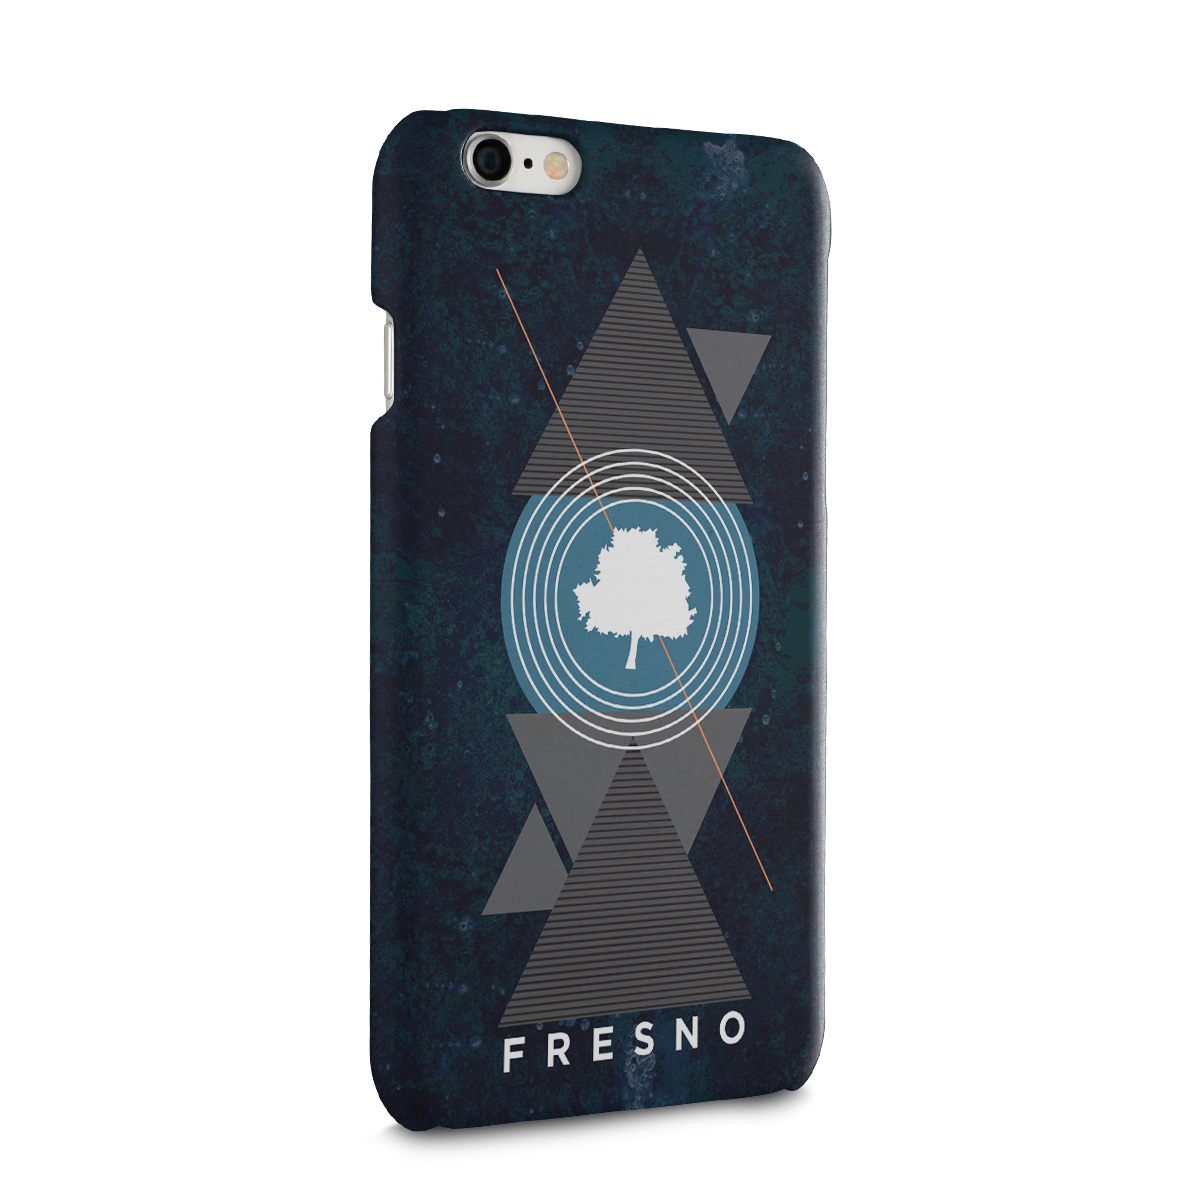 Capa para iPhone 6/6S Fresno Geometric